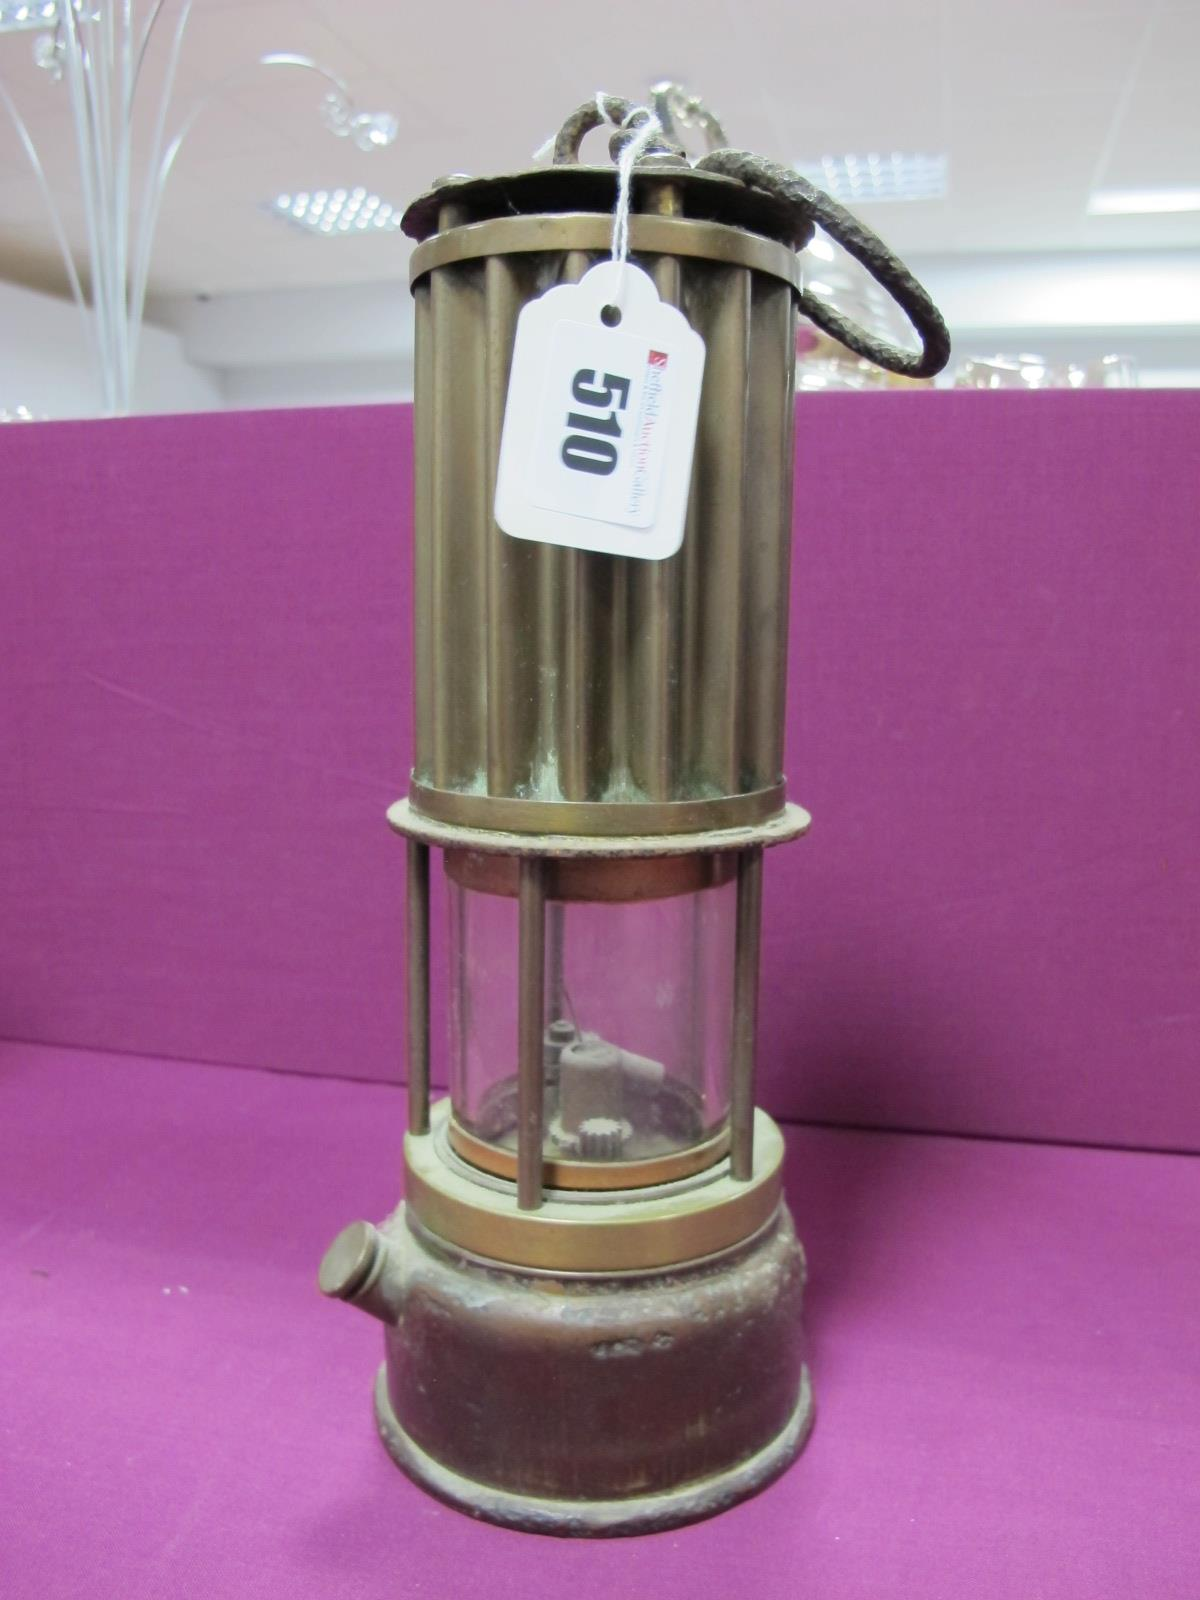 The Premier Lamp of Leeds Miners Lamp, having vertical ribbed upper body, 27cm high with